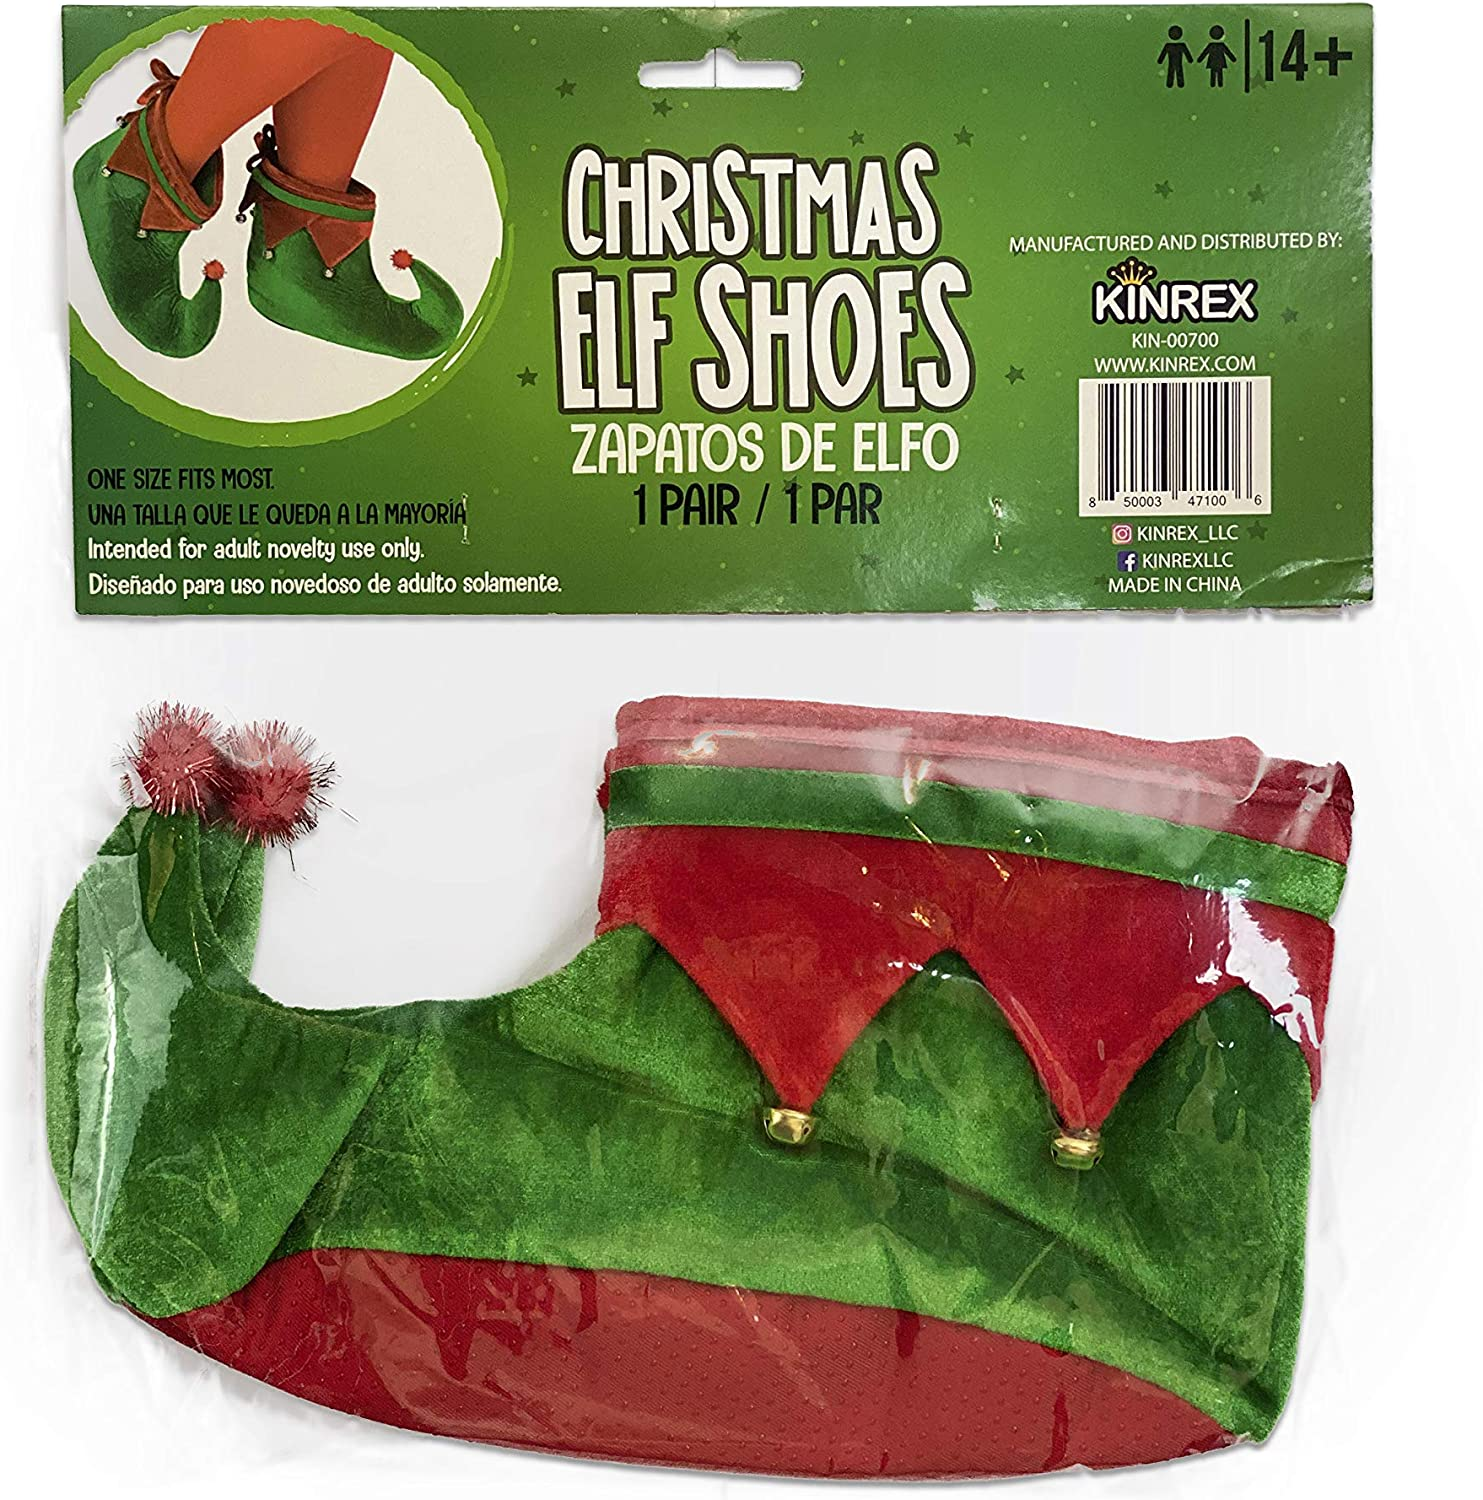 KINREX Christmas Elf Shoes Costume Kids - Special price OFFicial for a limited time Plush an